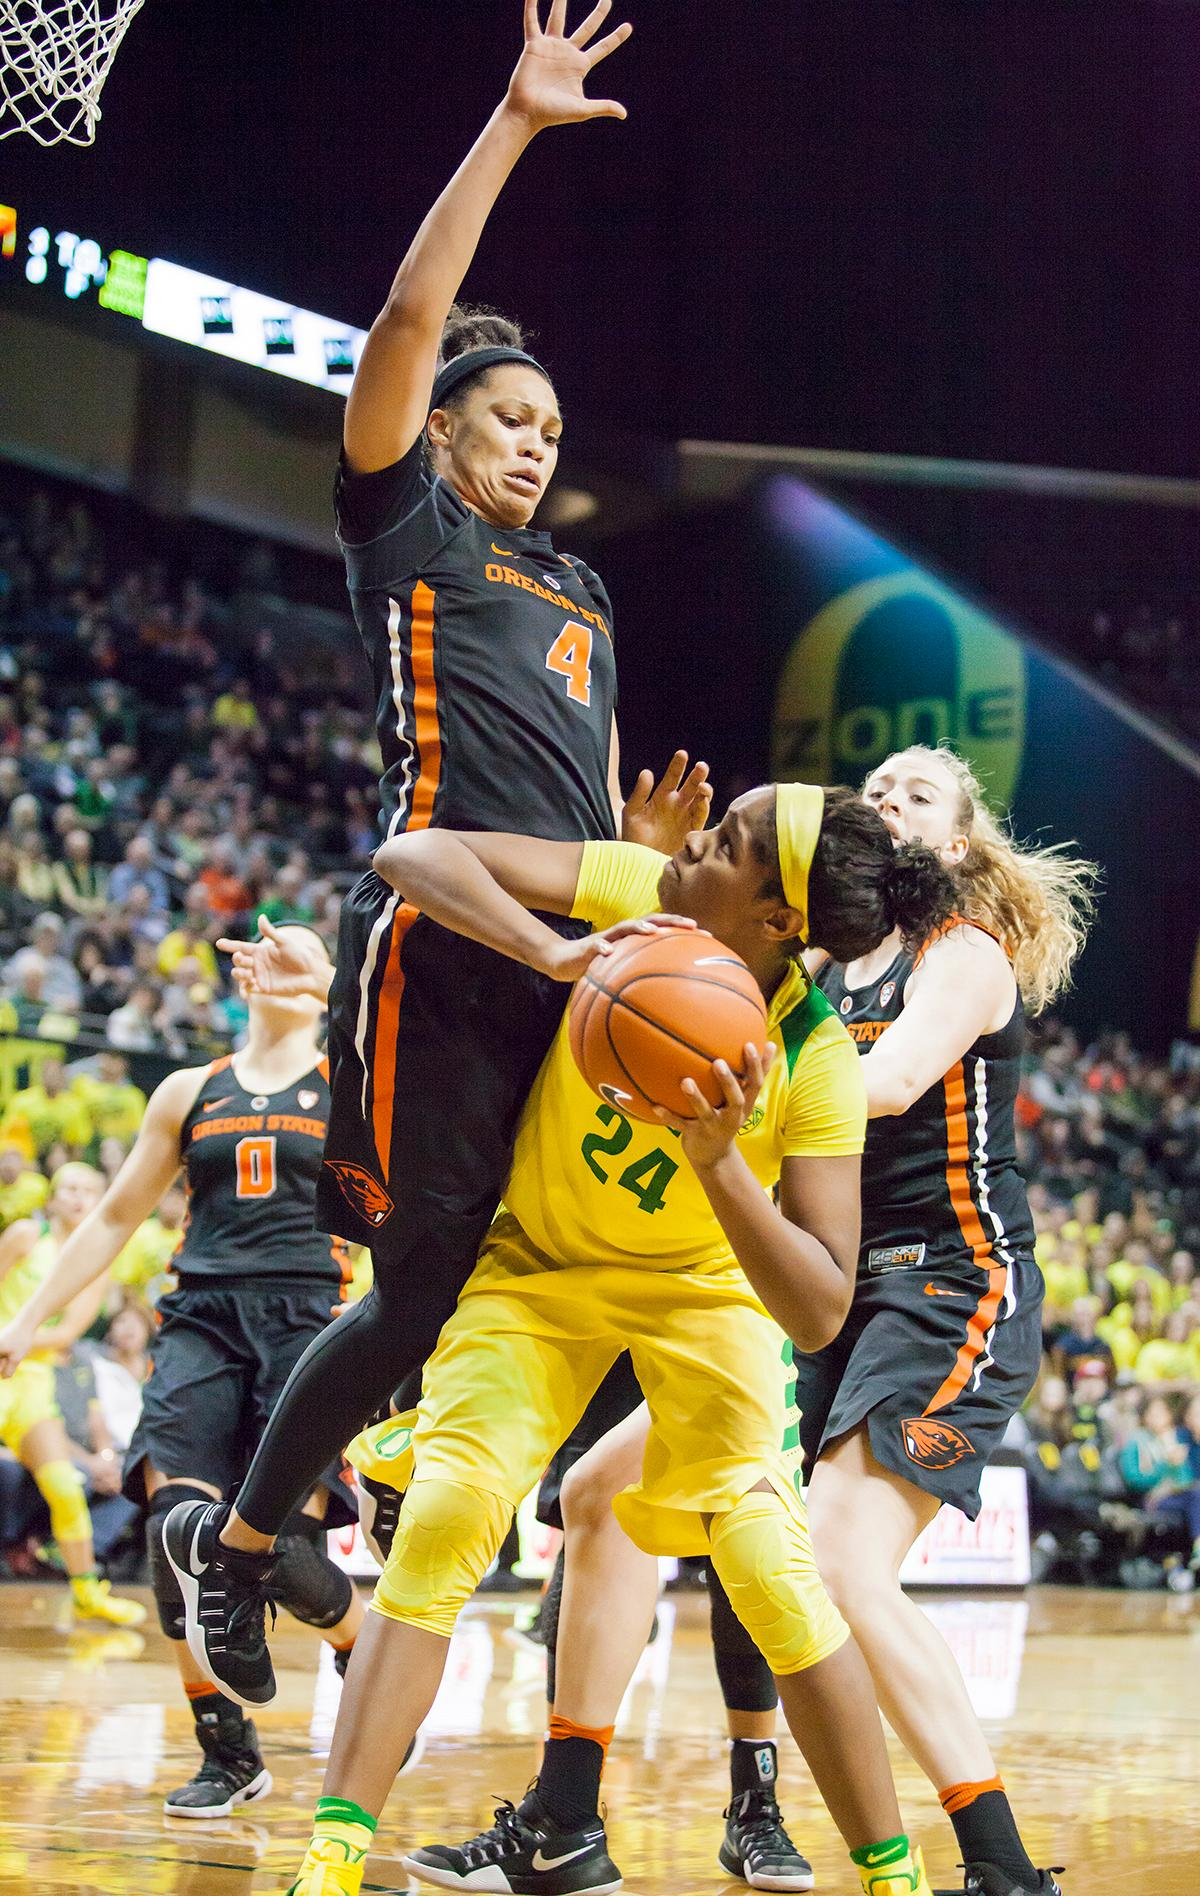 Oregon forward Ruthy Hebard (#24) looks to make a pass around Oregon Stare center Breanna Brown (#4). The Oregon Ducks lost 40 to 43 against the Oregon State Beavers after a tightly matched 4th quarter. Photo by Ben Lonergan, Oregon News Lab